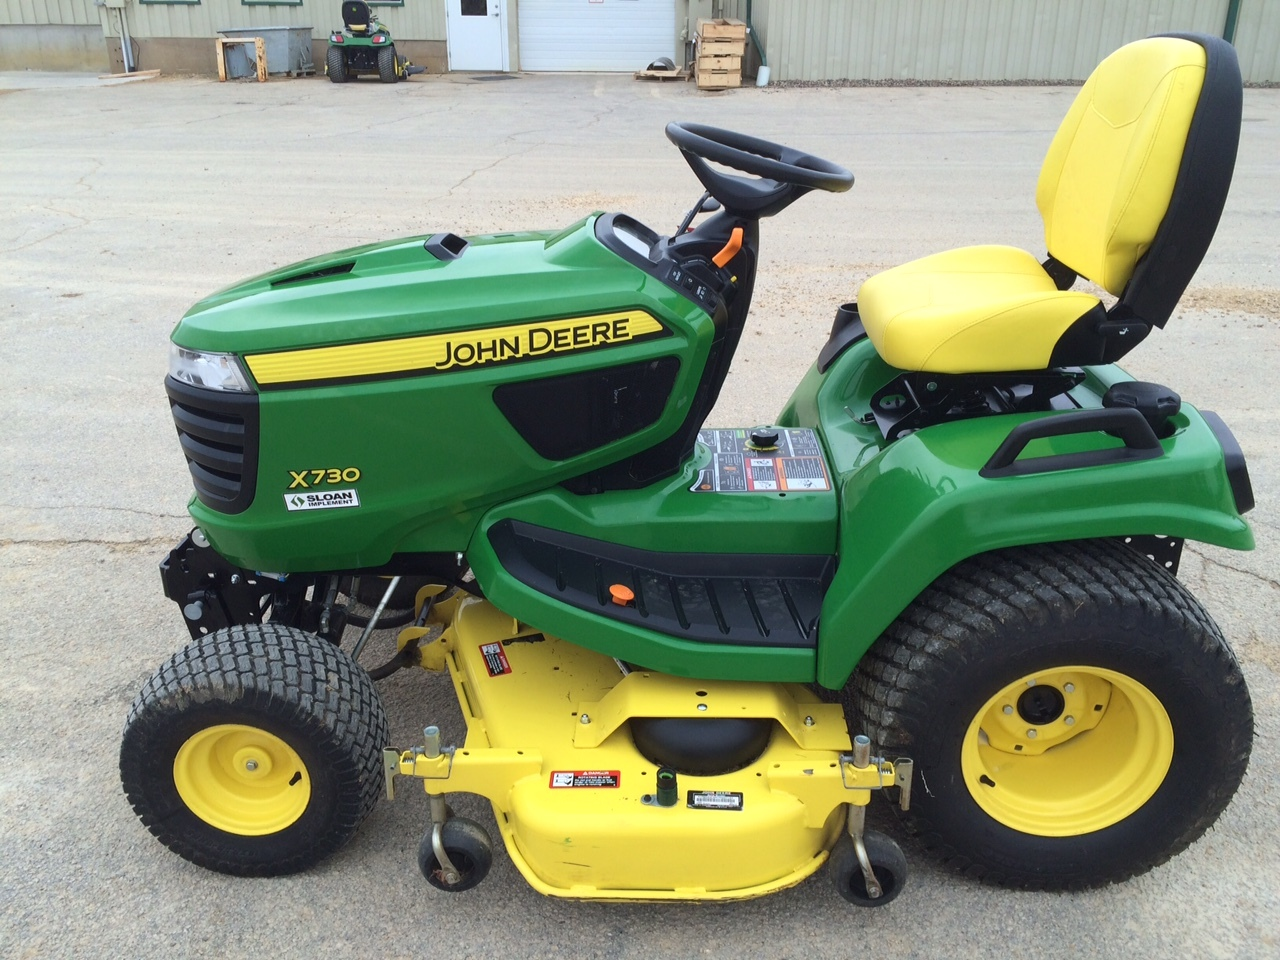 John deere x730 lawn garden tractors for sale 53708 for Lawn and garden implements